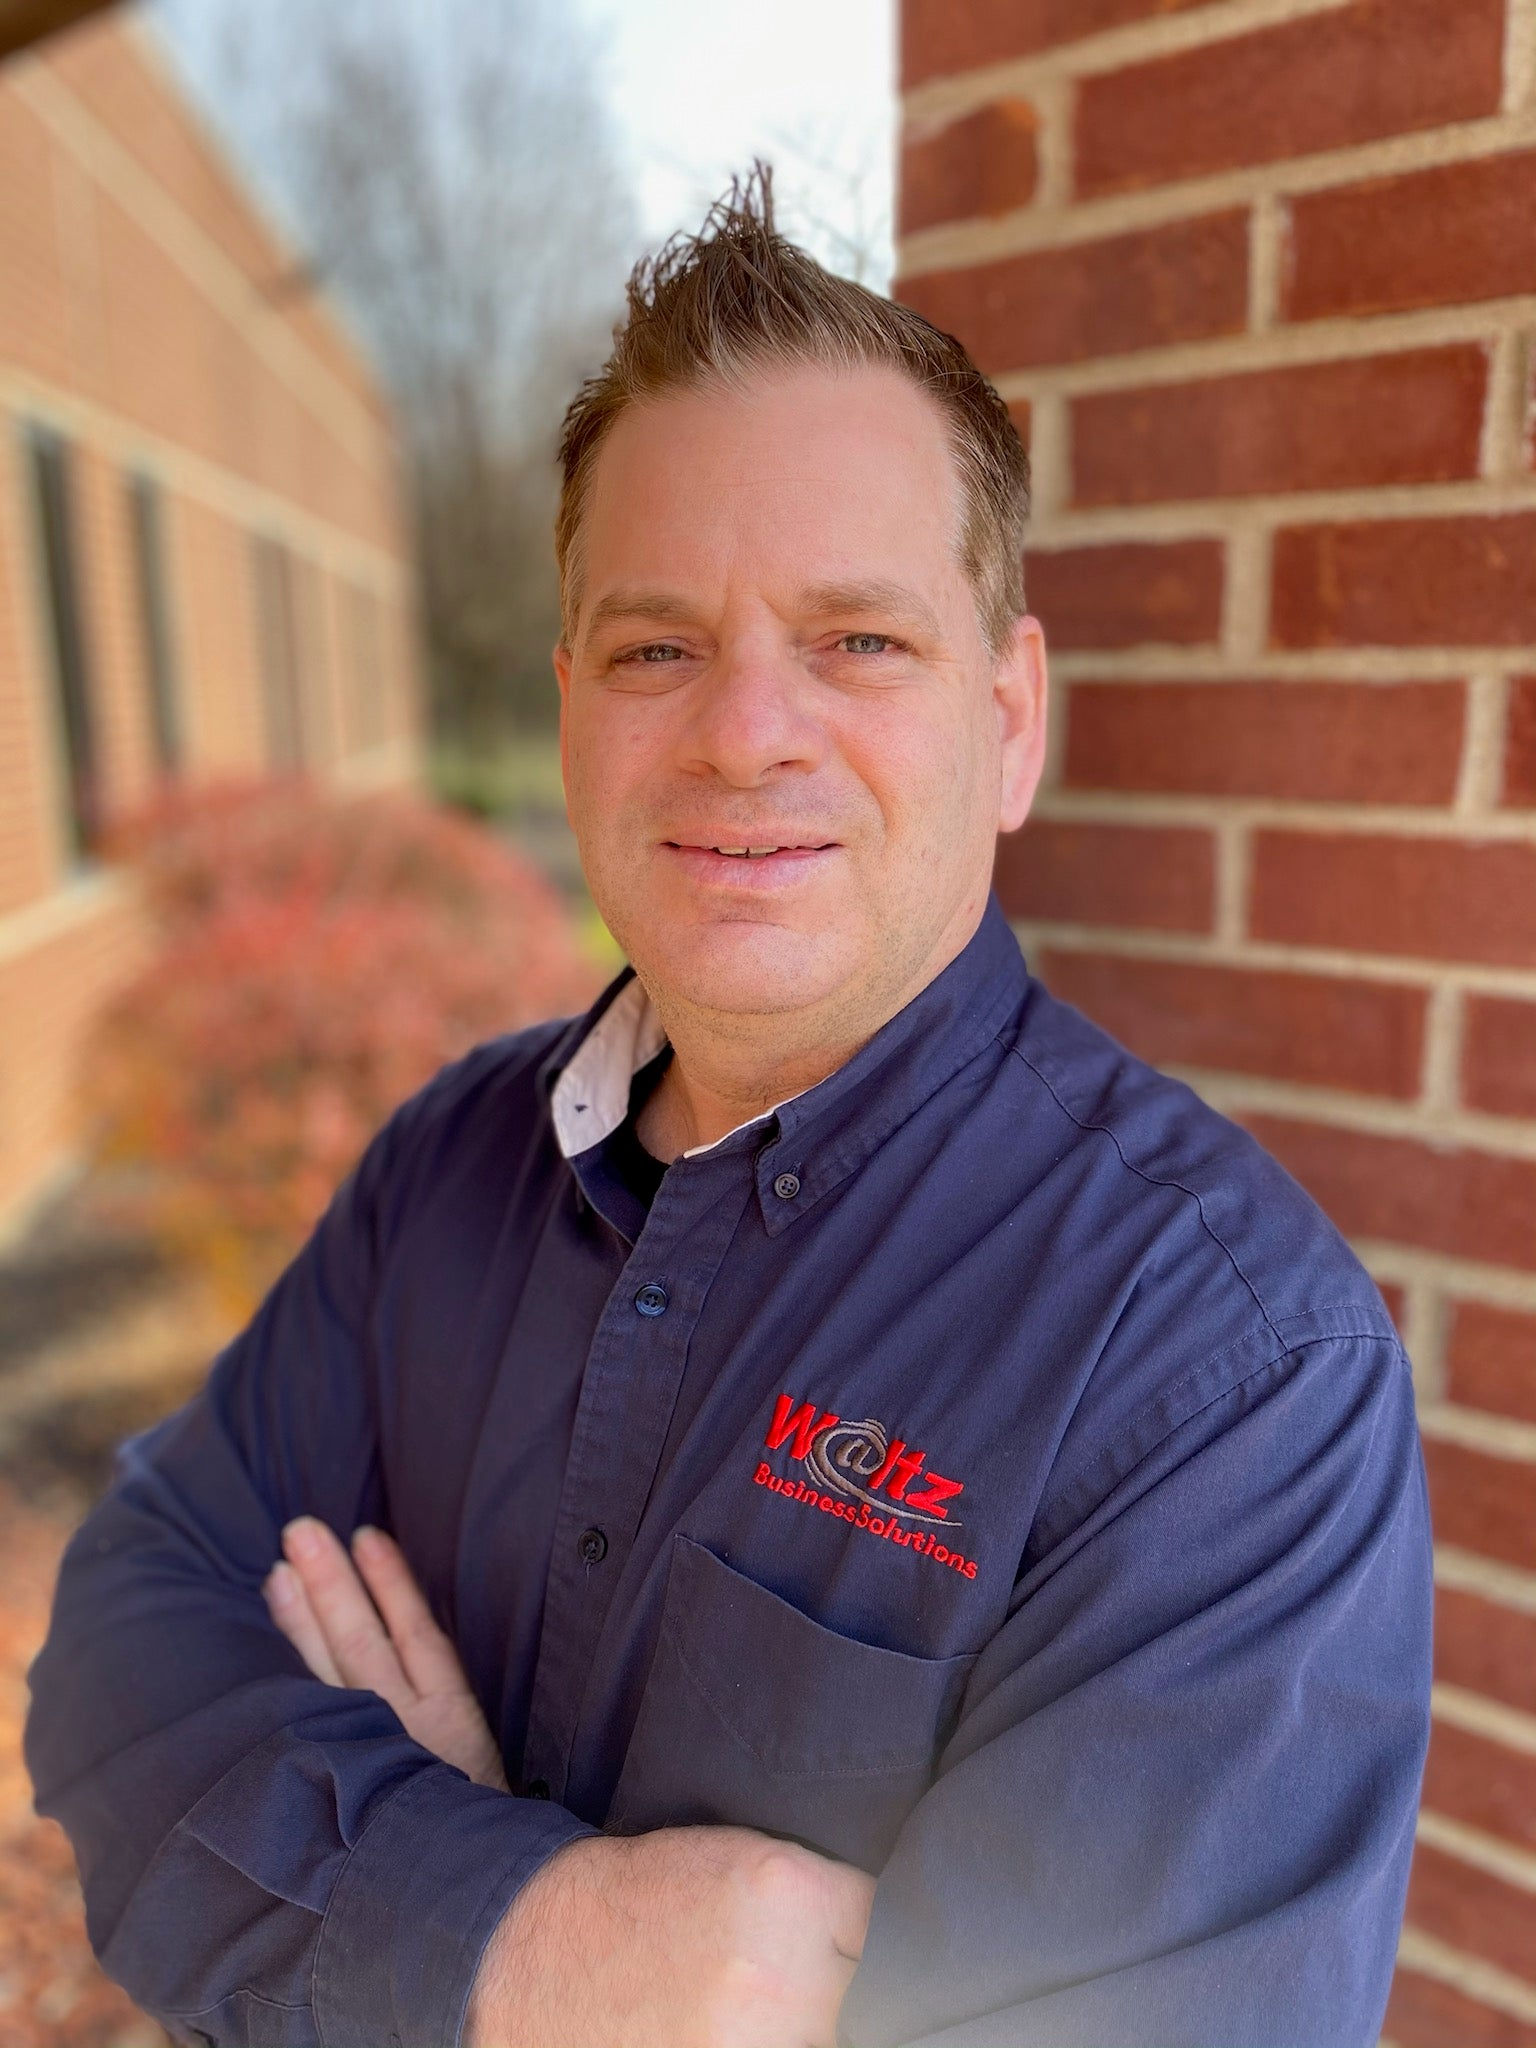 Grant Whitely against brick wall at Waltz Business Solutions in Kentucky